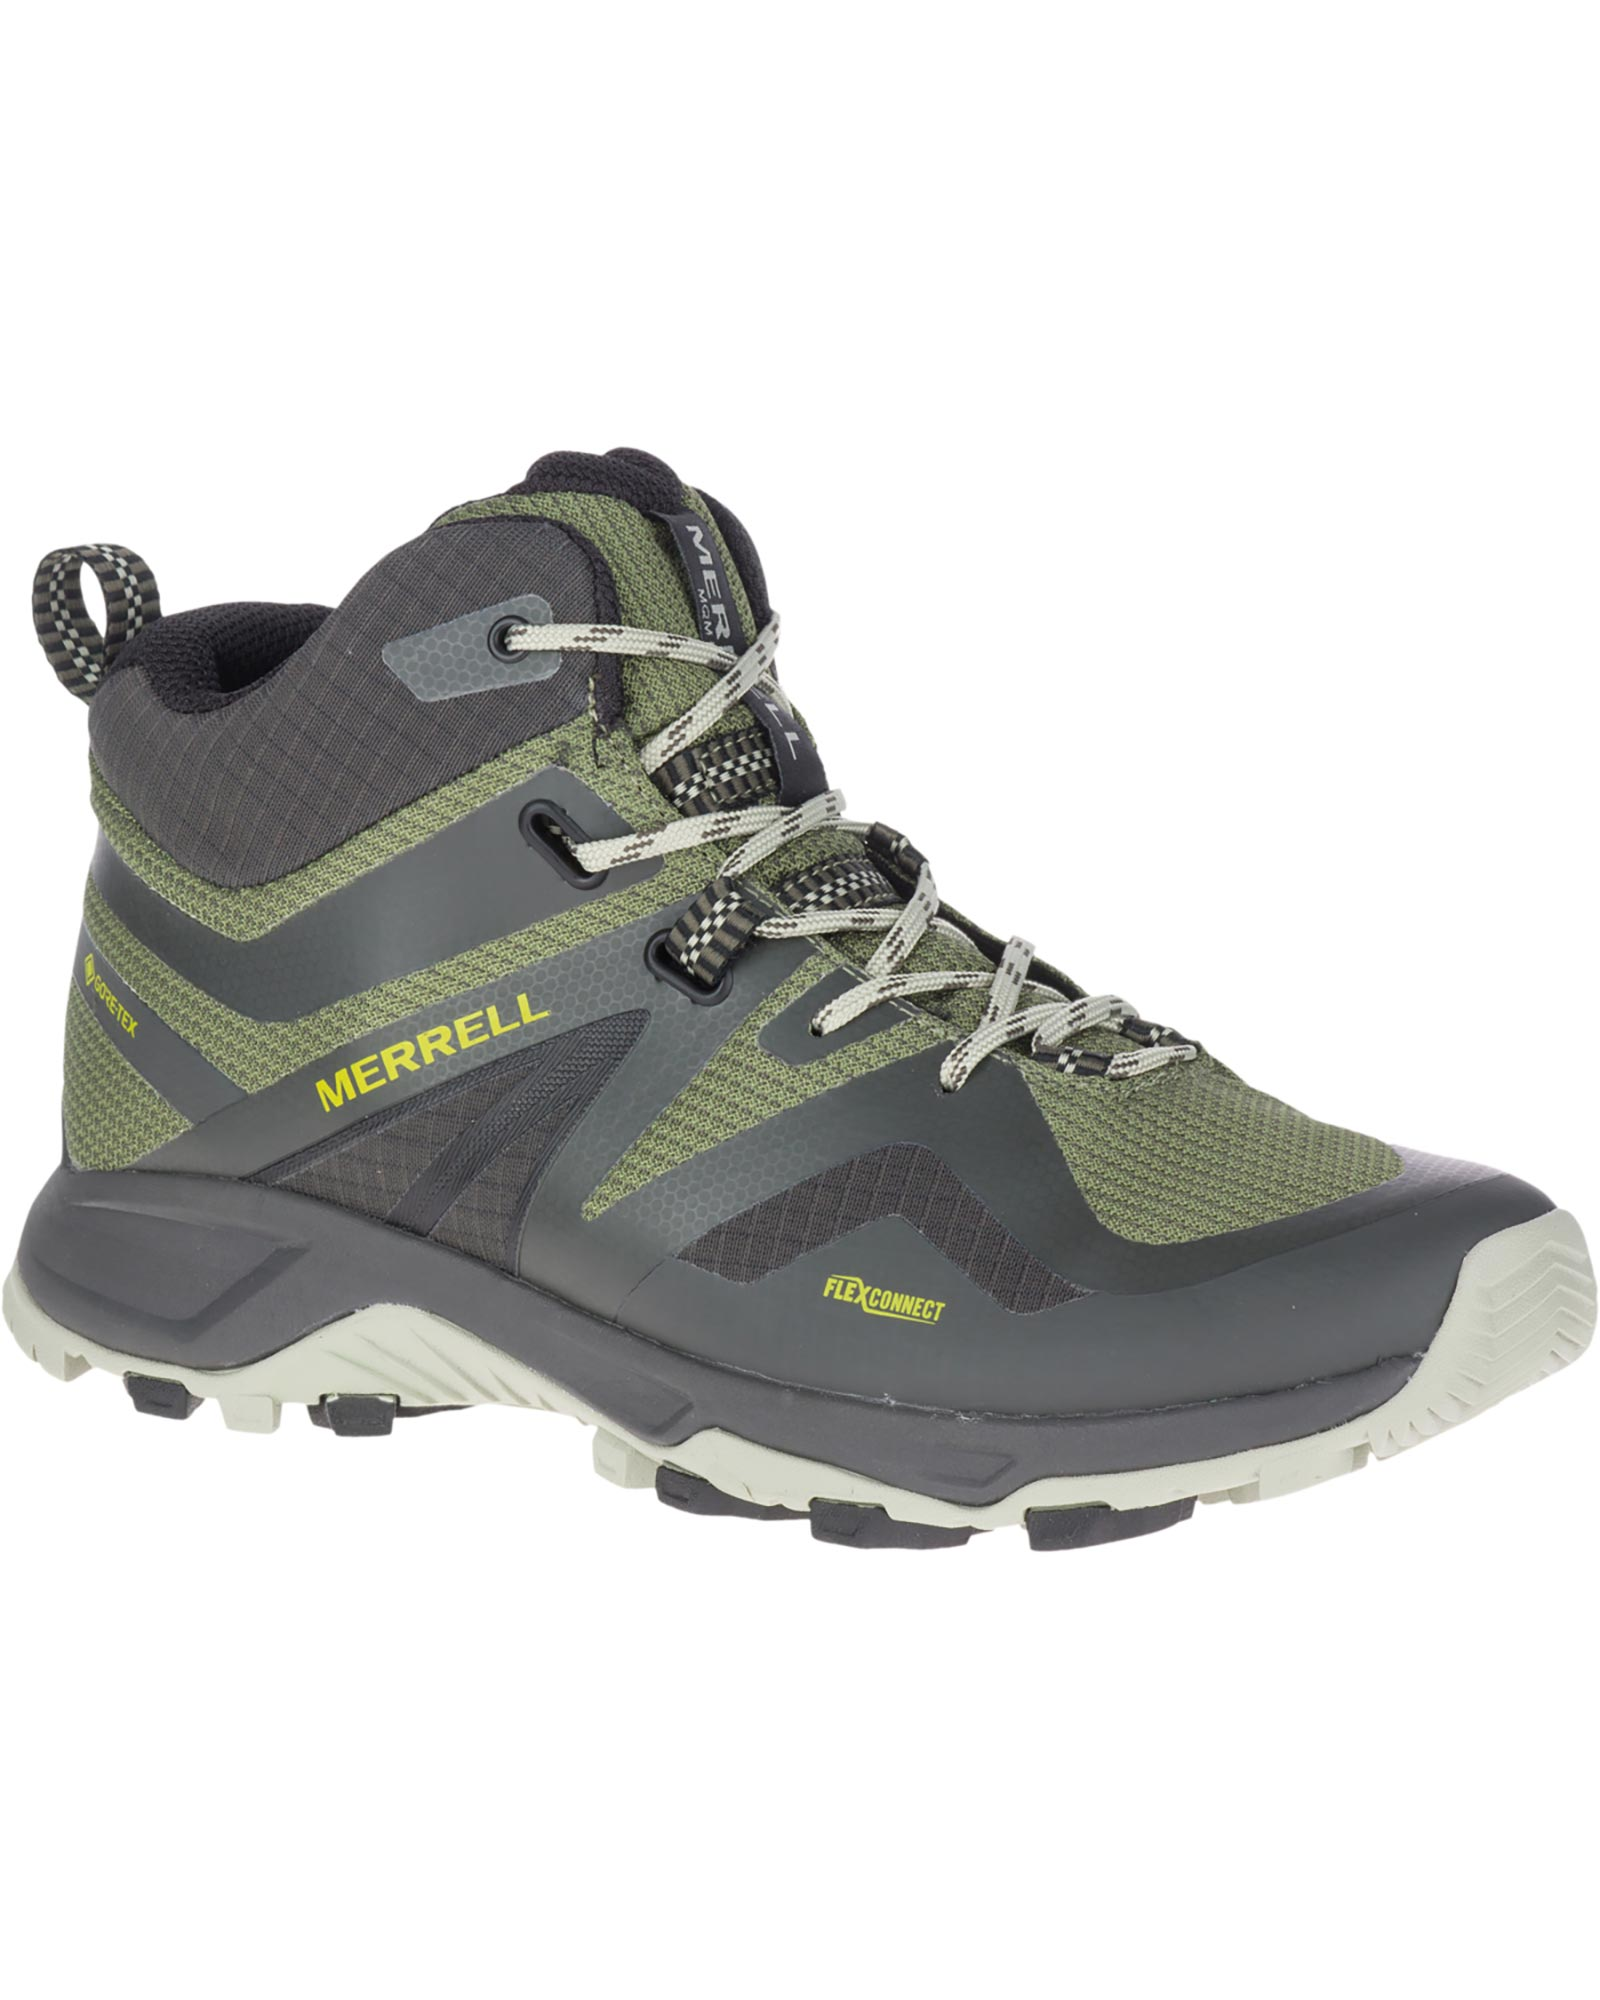 Merrell Men's MQM Flex 2 Mid GORE-TEX Invisible Fit Walking Boots 0